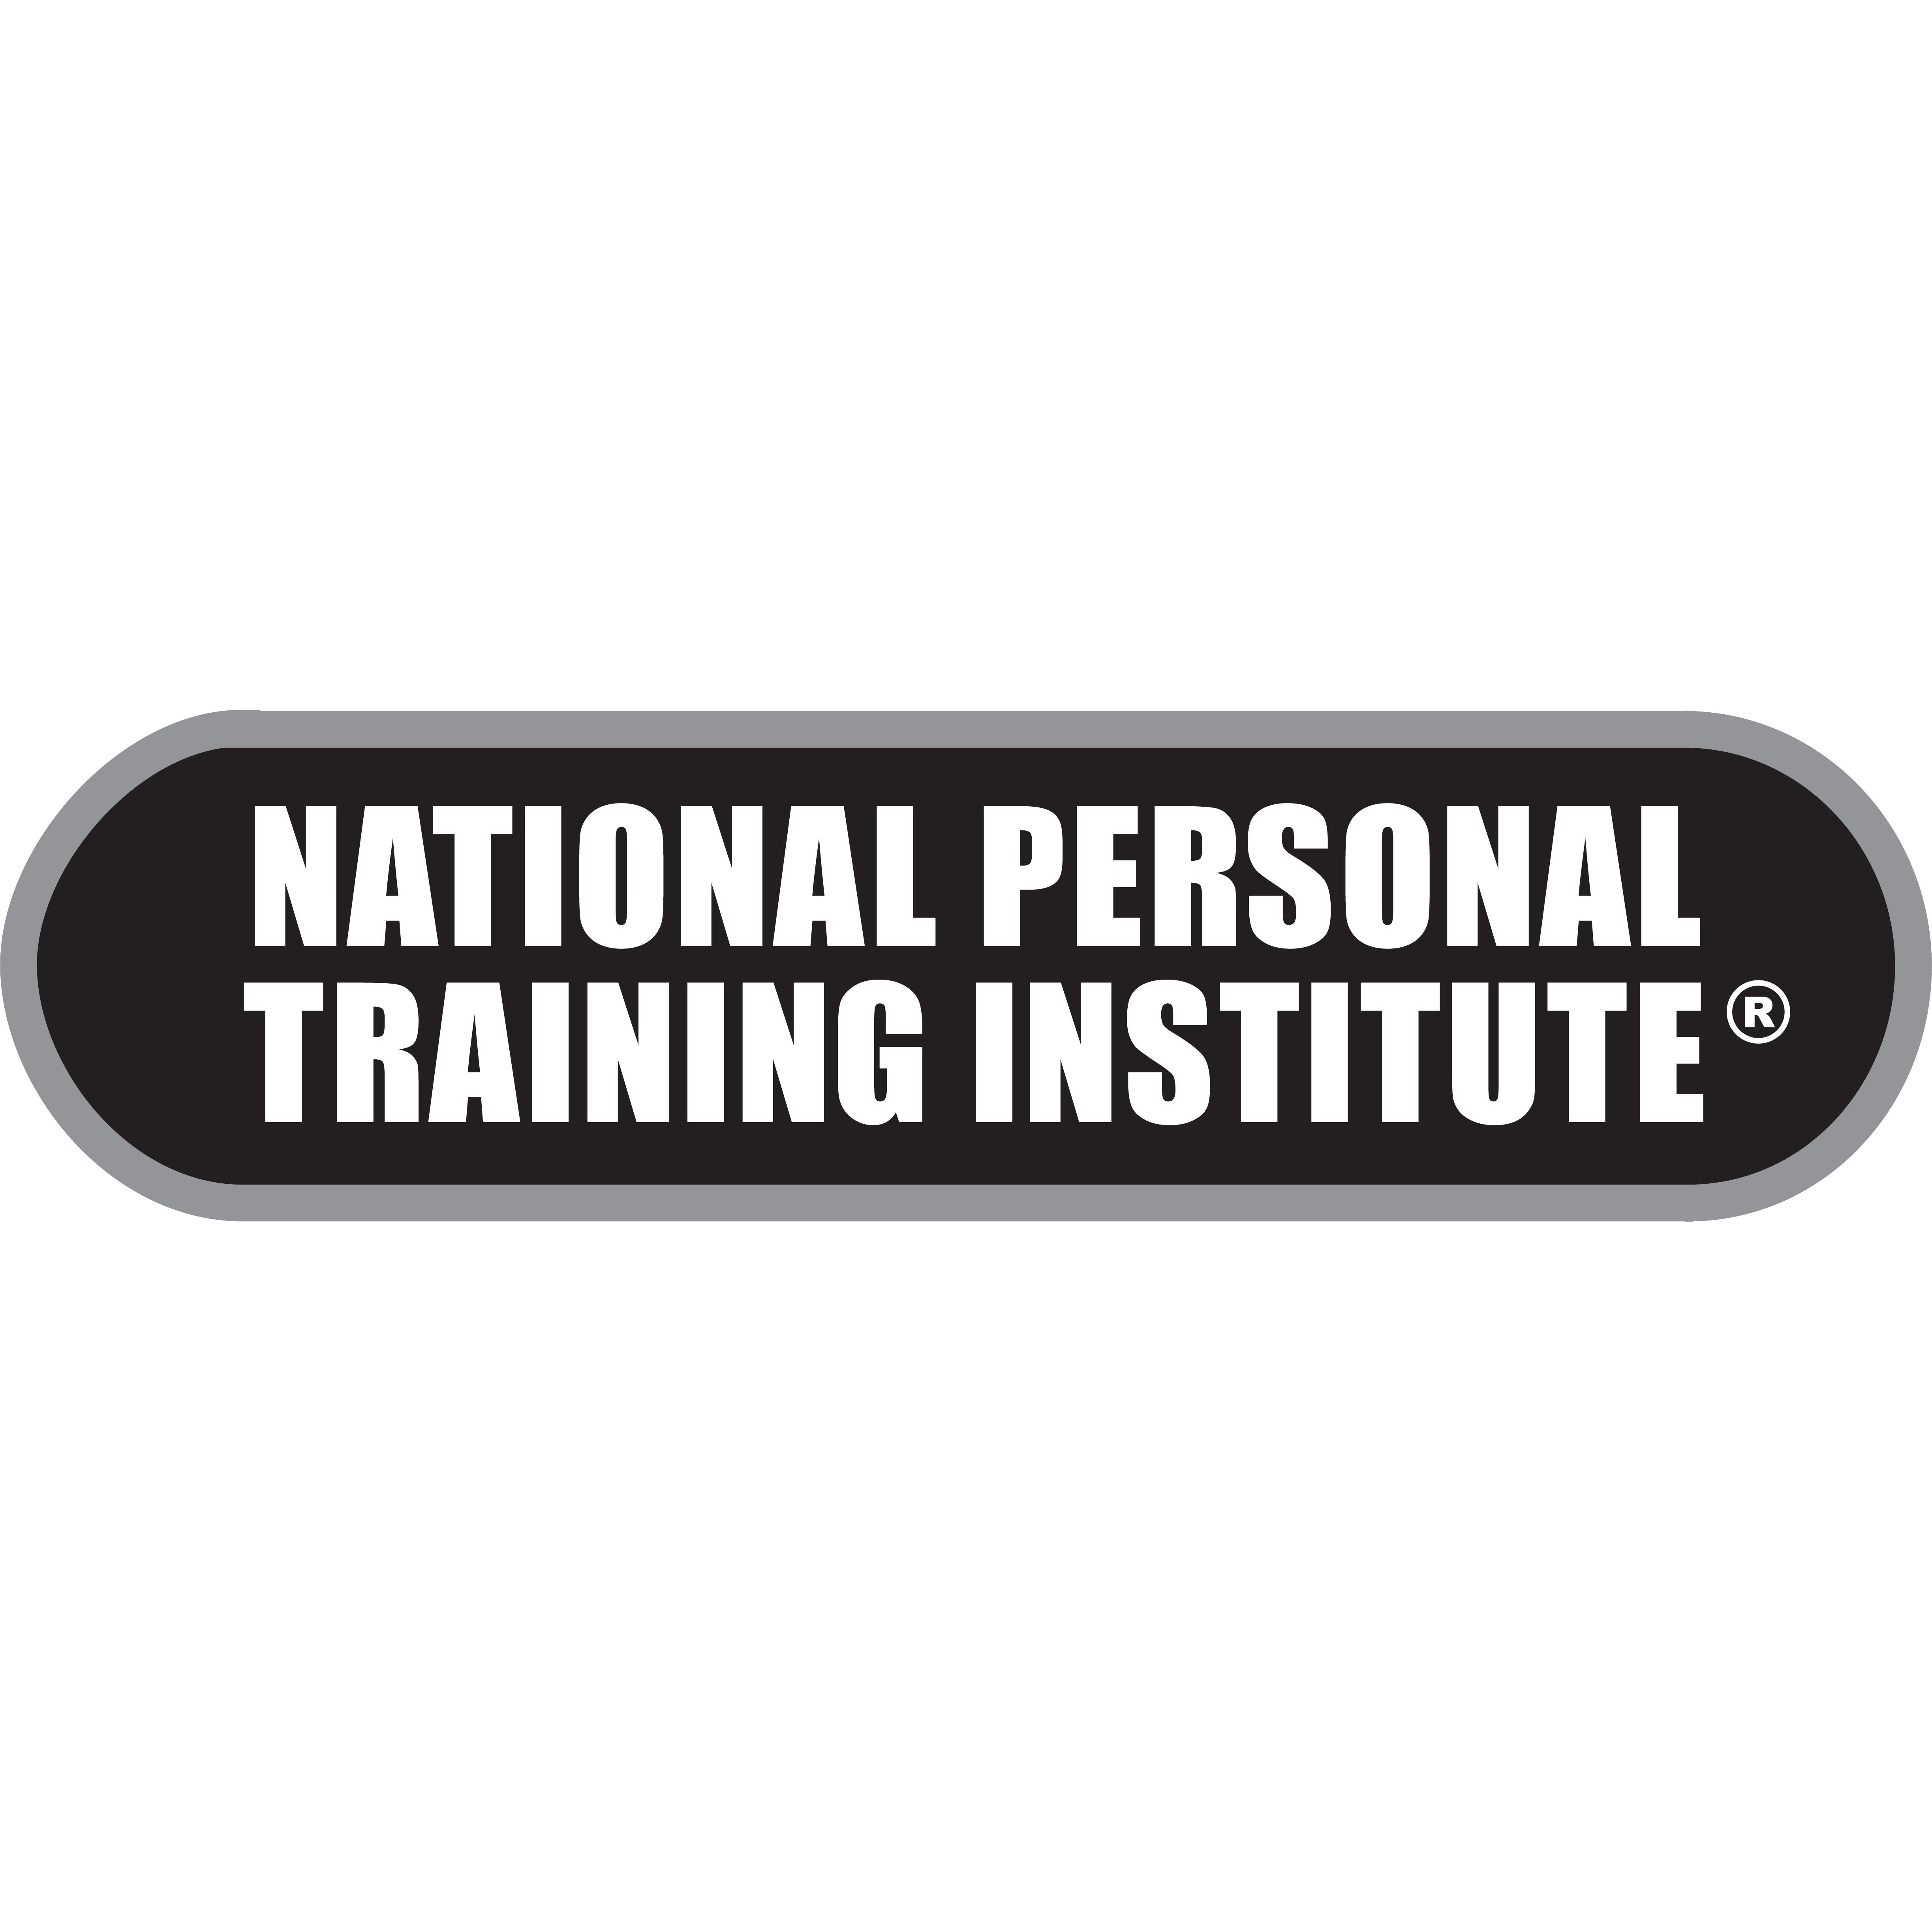 National Personal Training Institute image 6